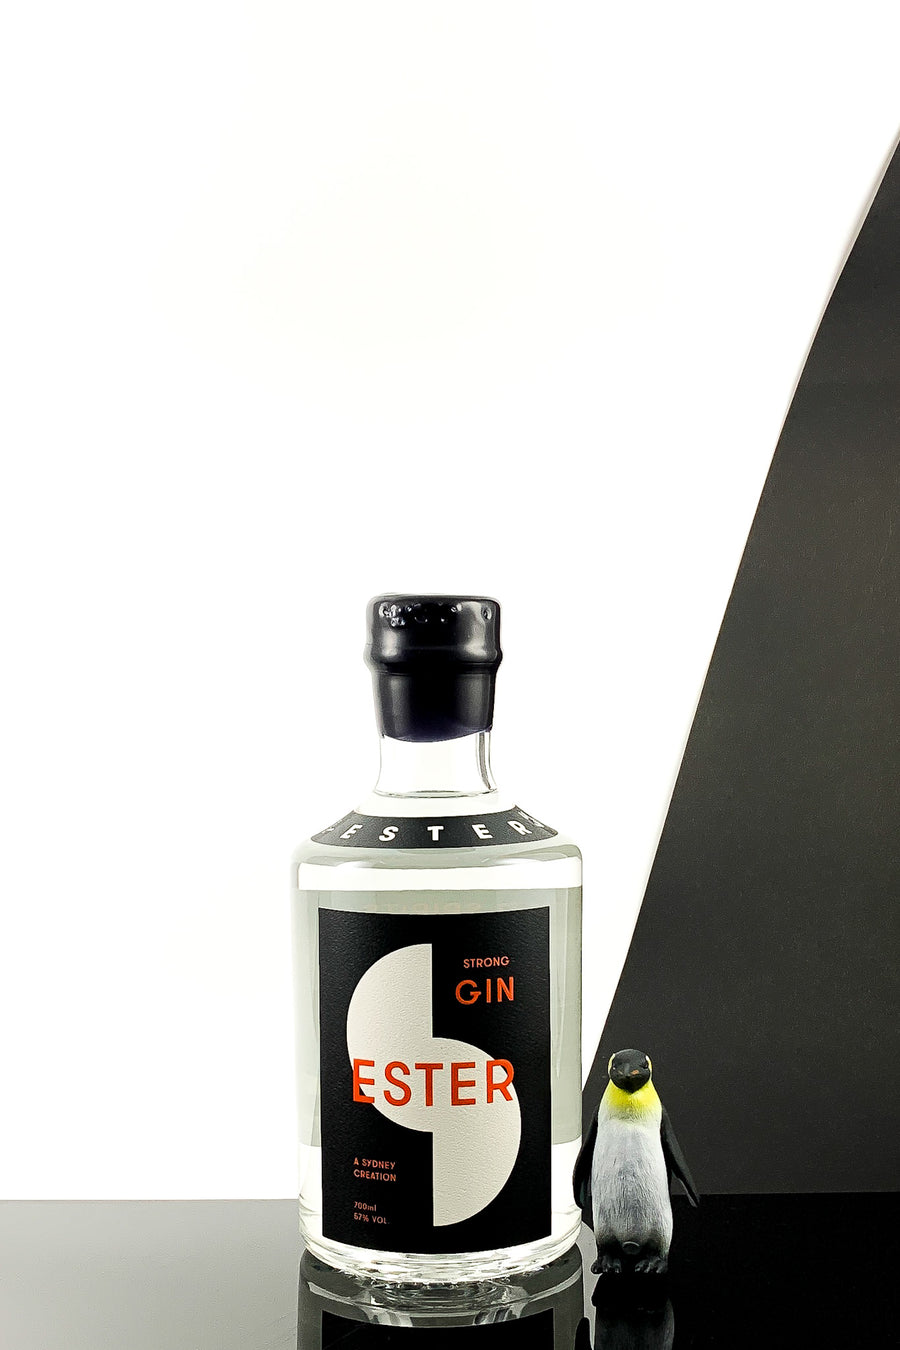 Ester Spirits The Strong Navy Strength Gin